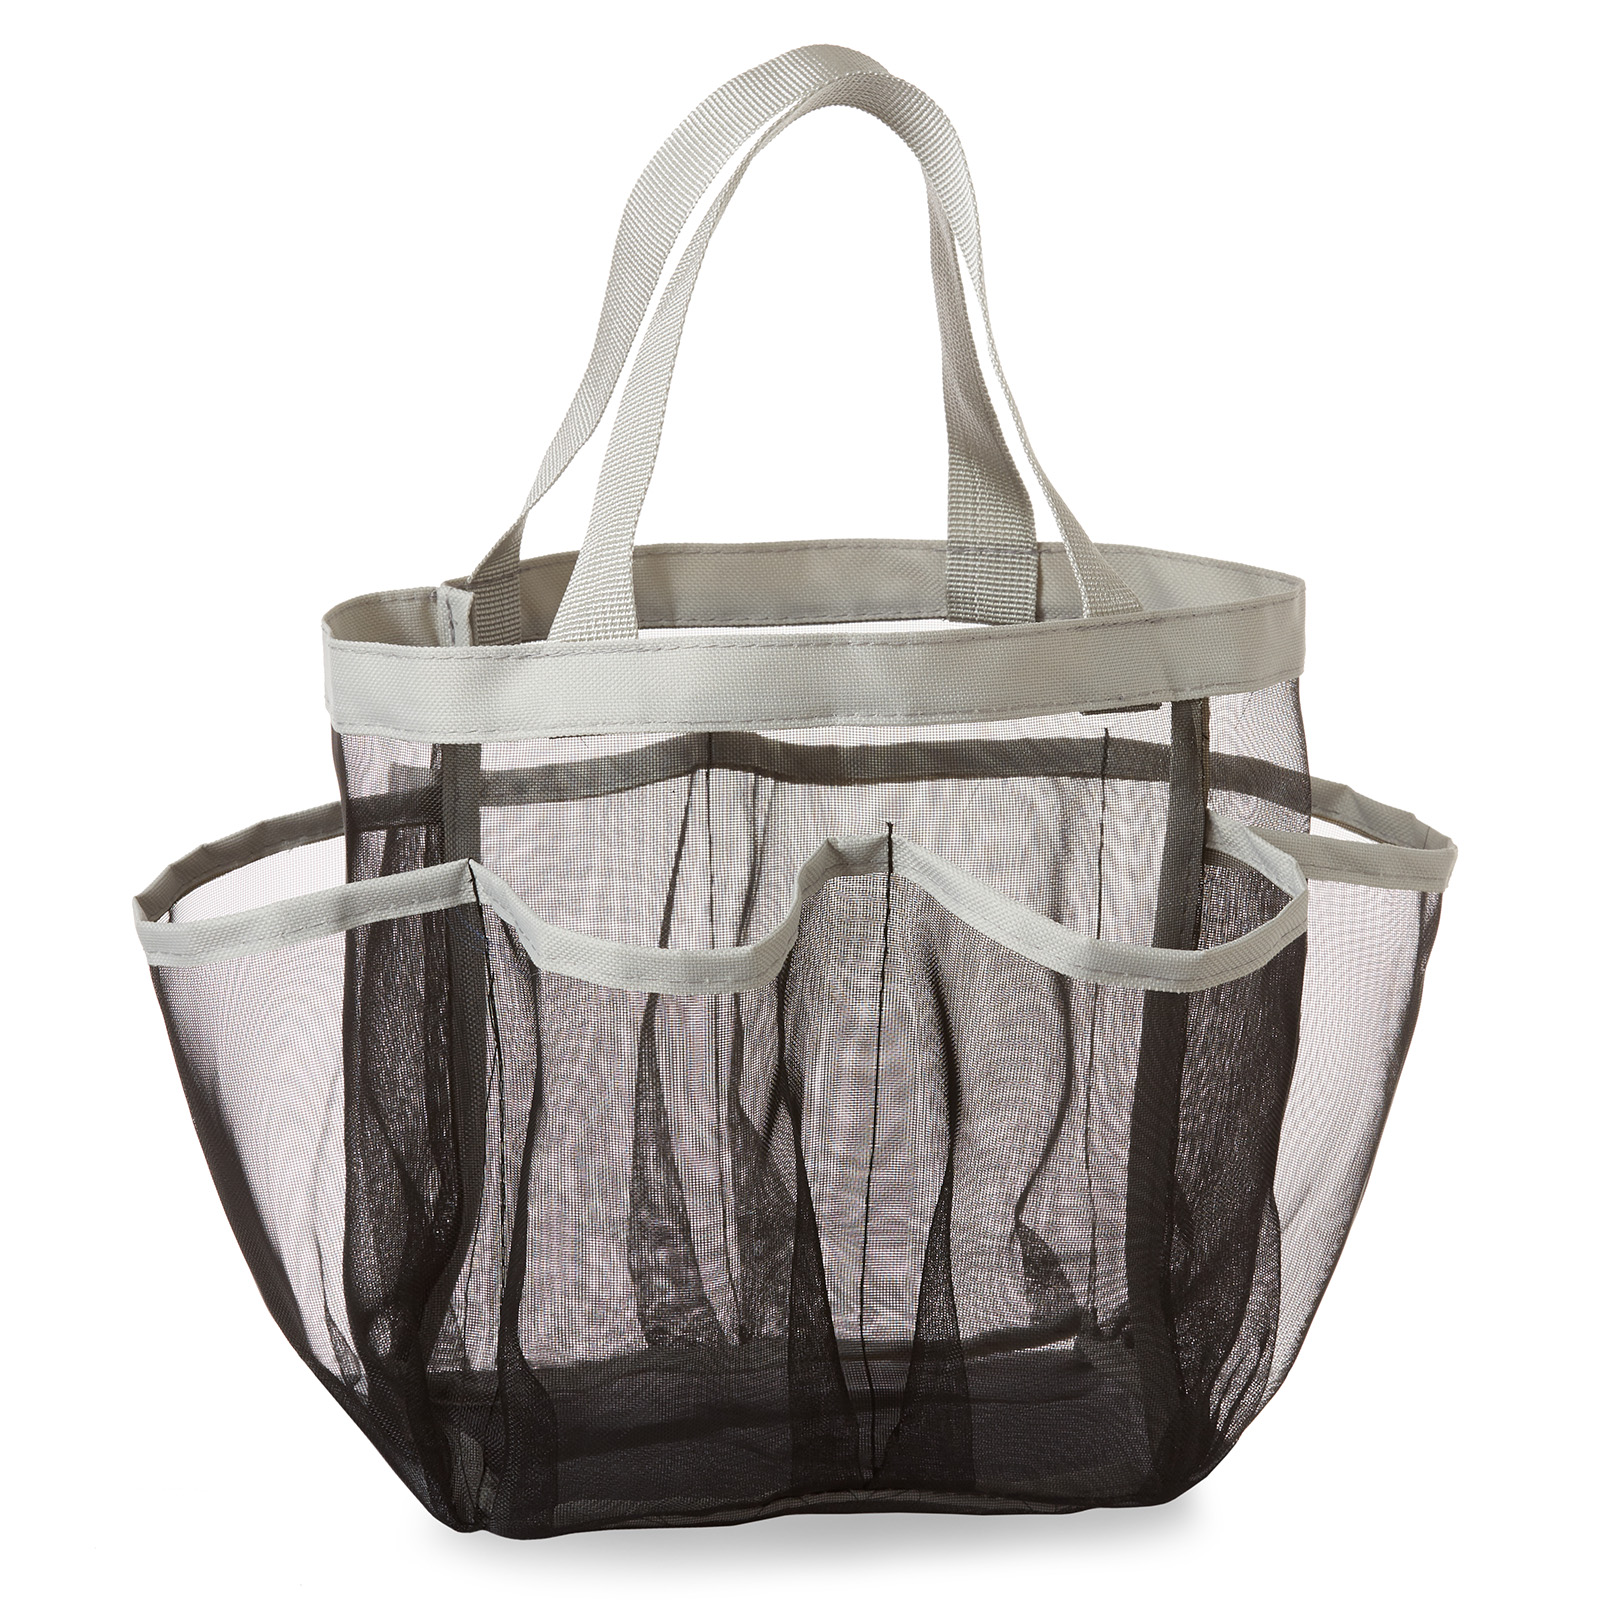 Casafield Portable Mesh Shower Caddy Tote, Black - Quick ...